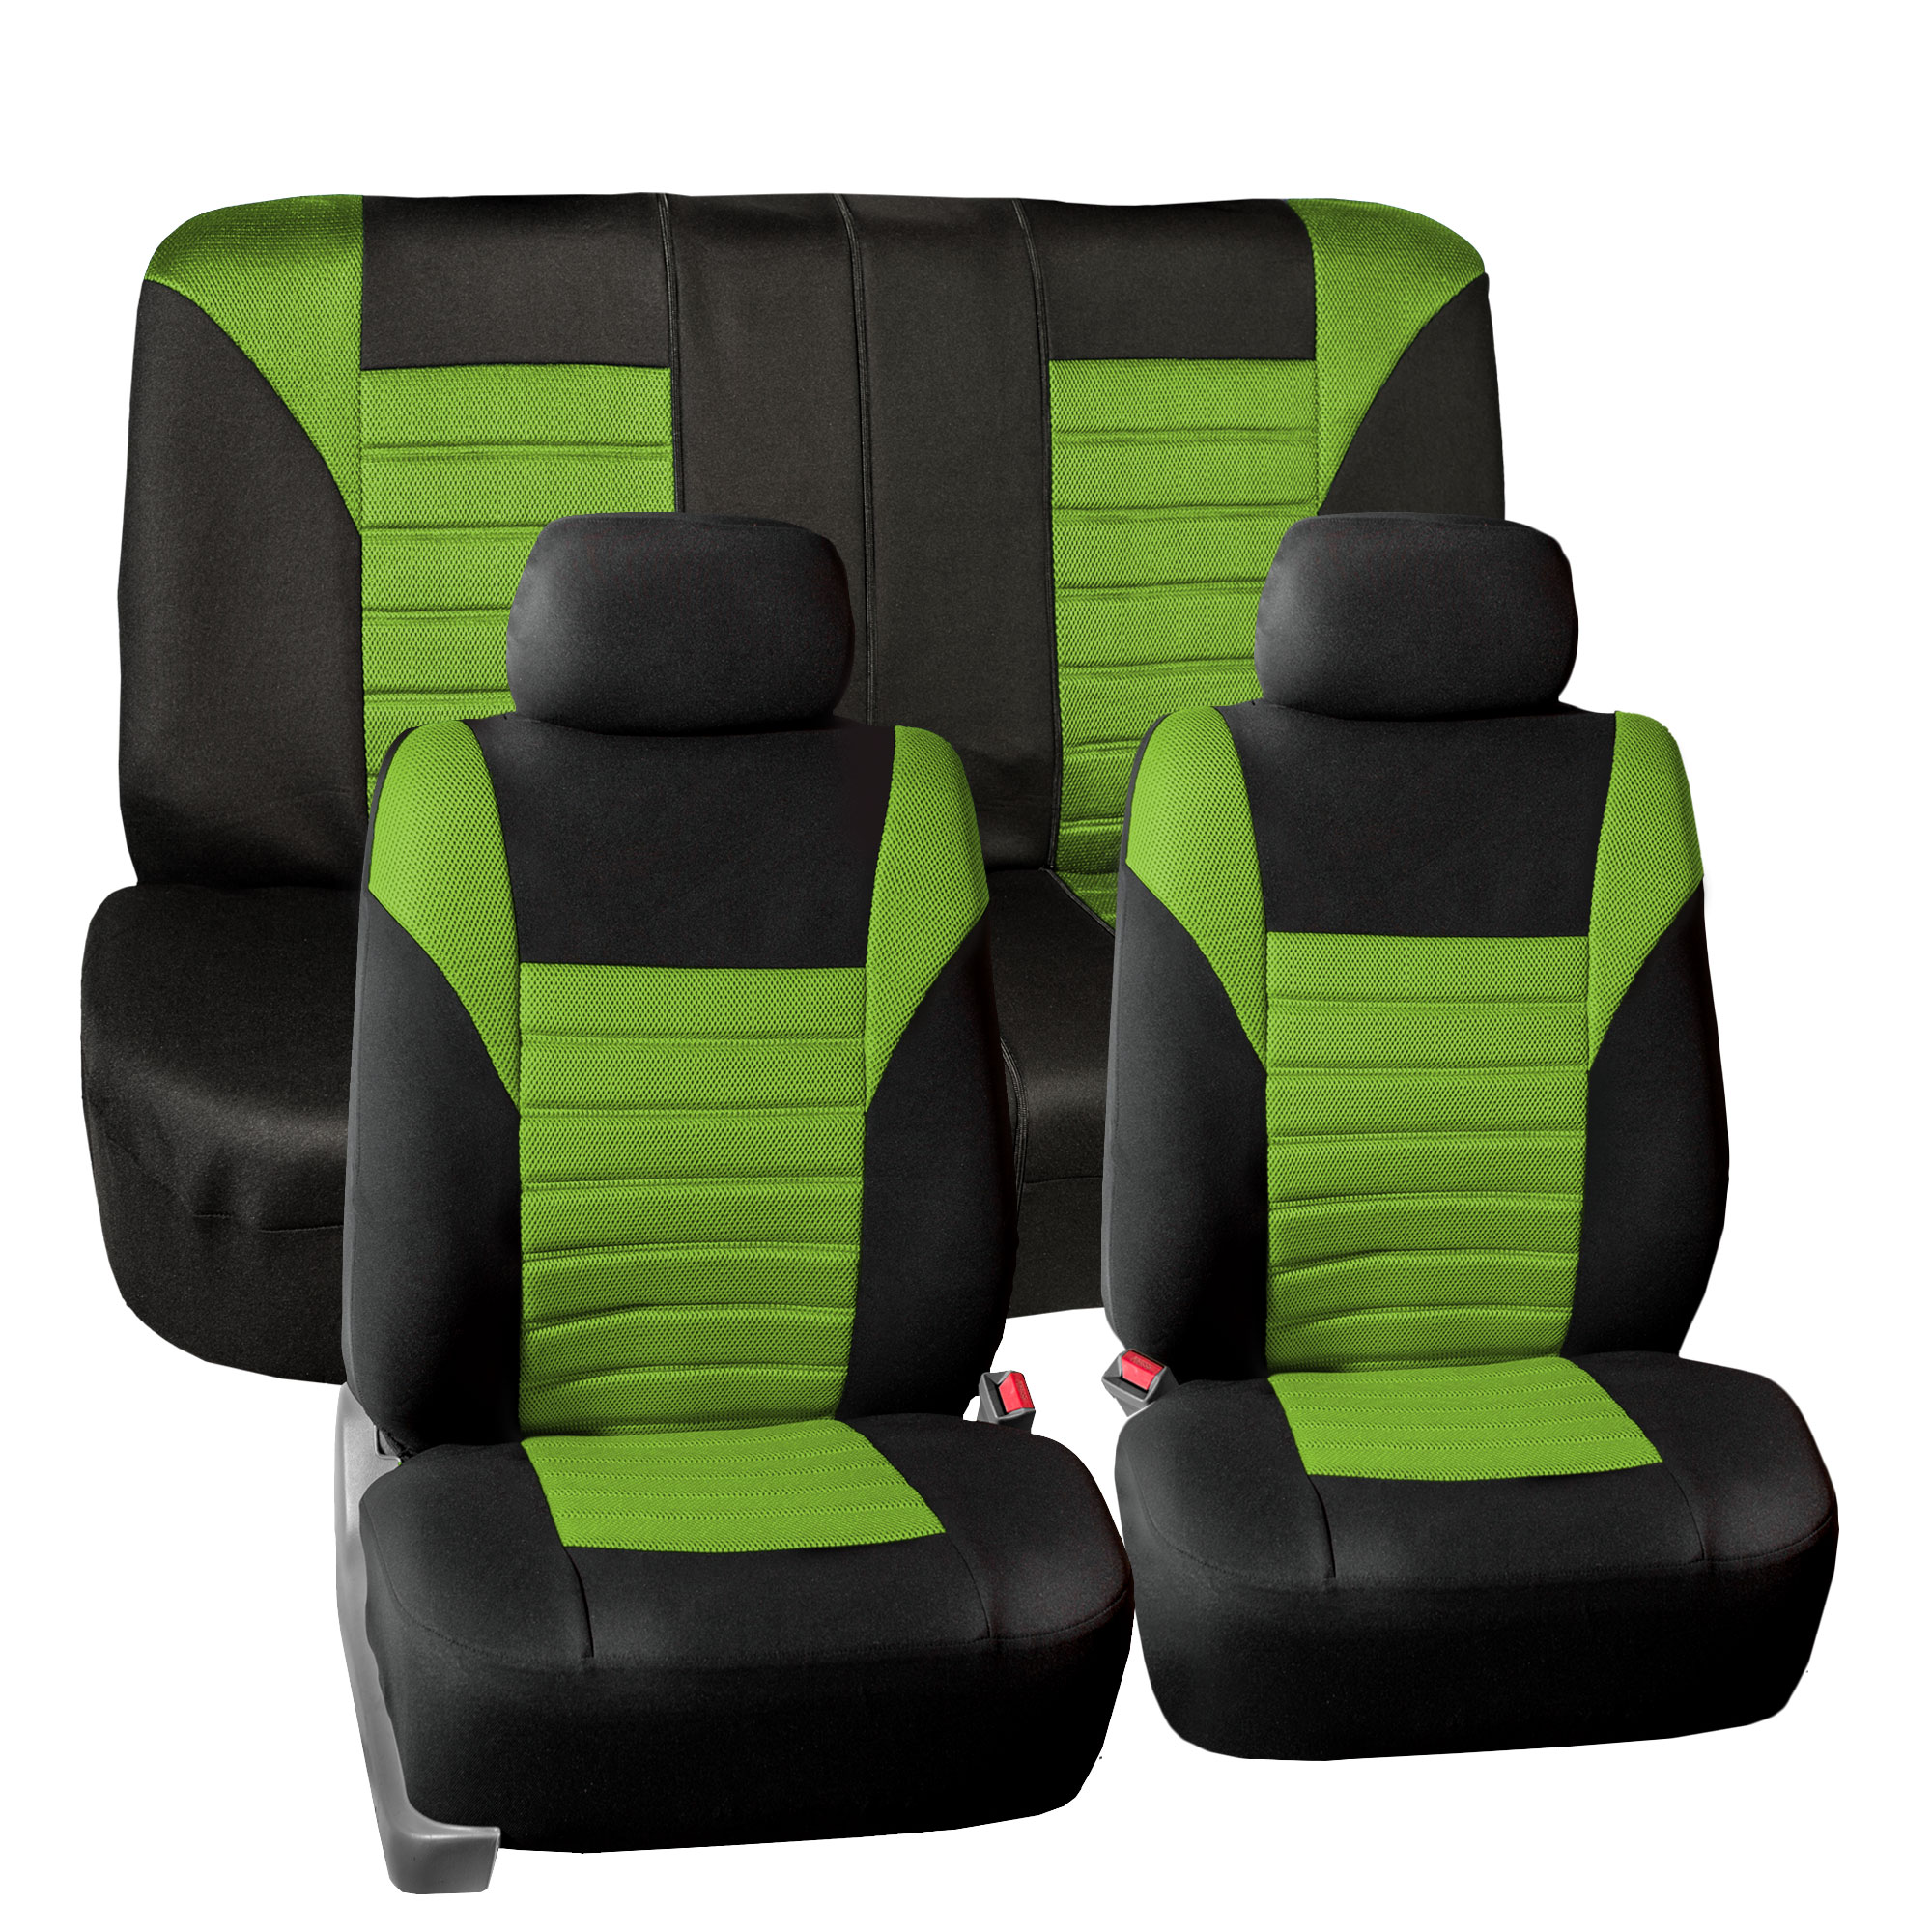 FH Group Premium Air Mesh Seat Covers for Auto Car SUV Van, Full Set, 11 Colors